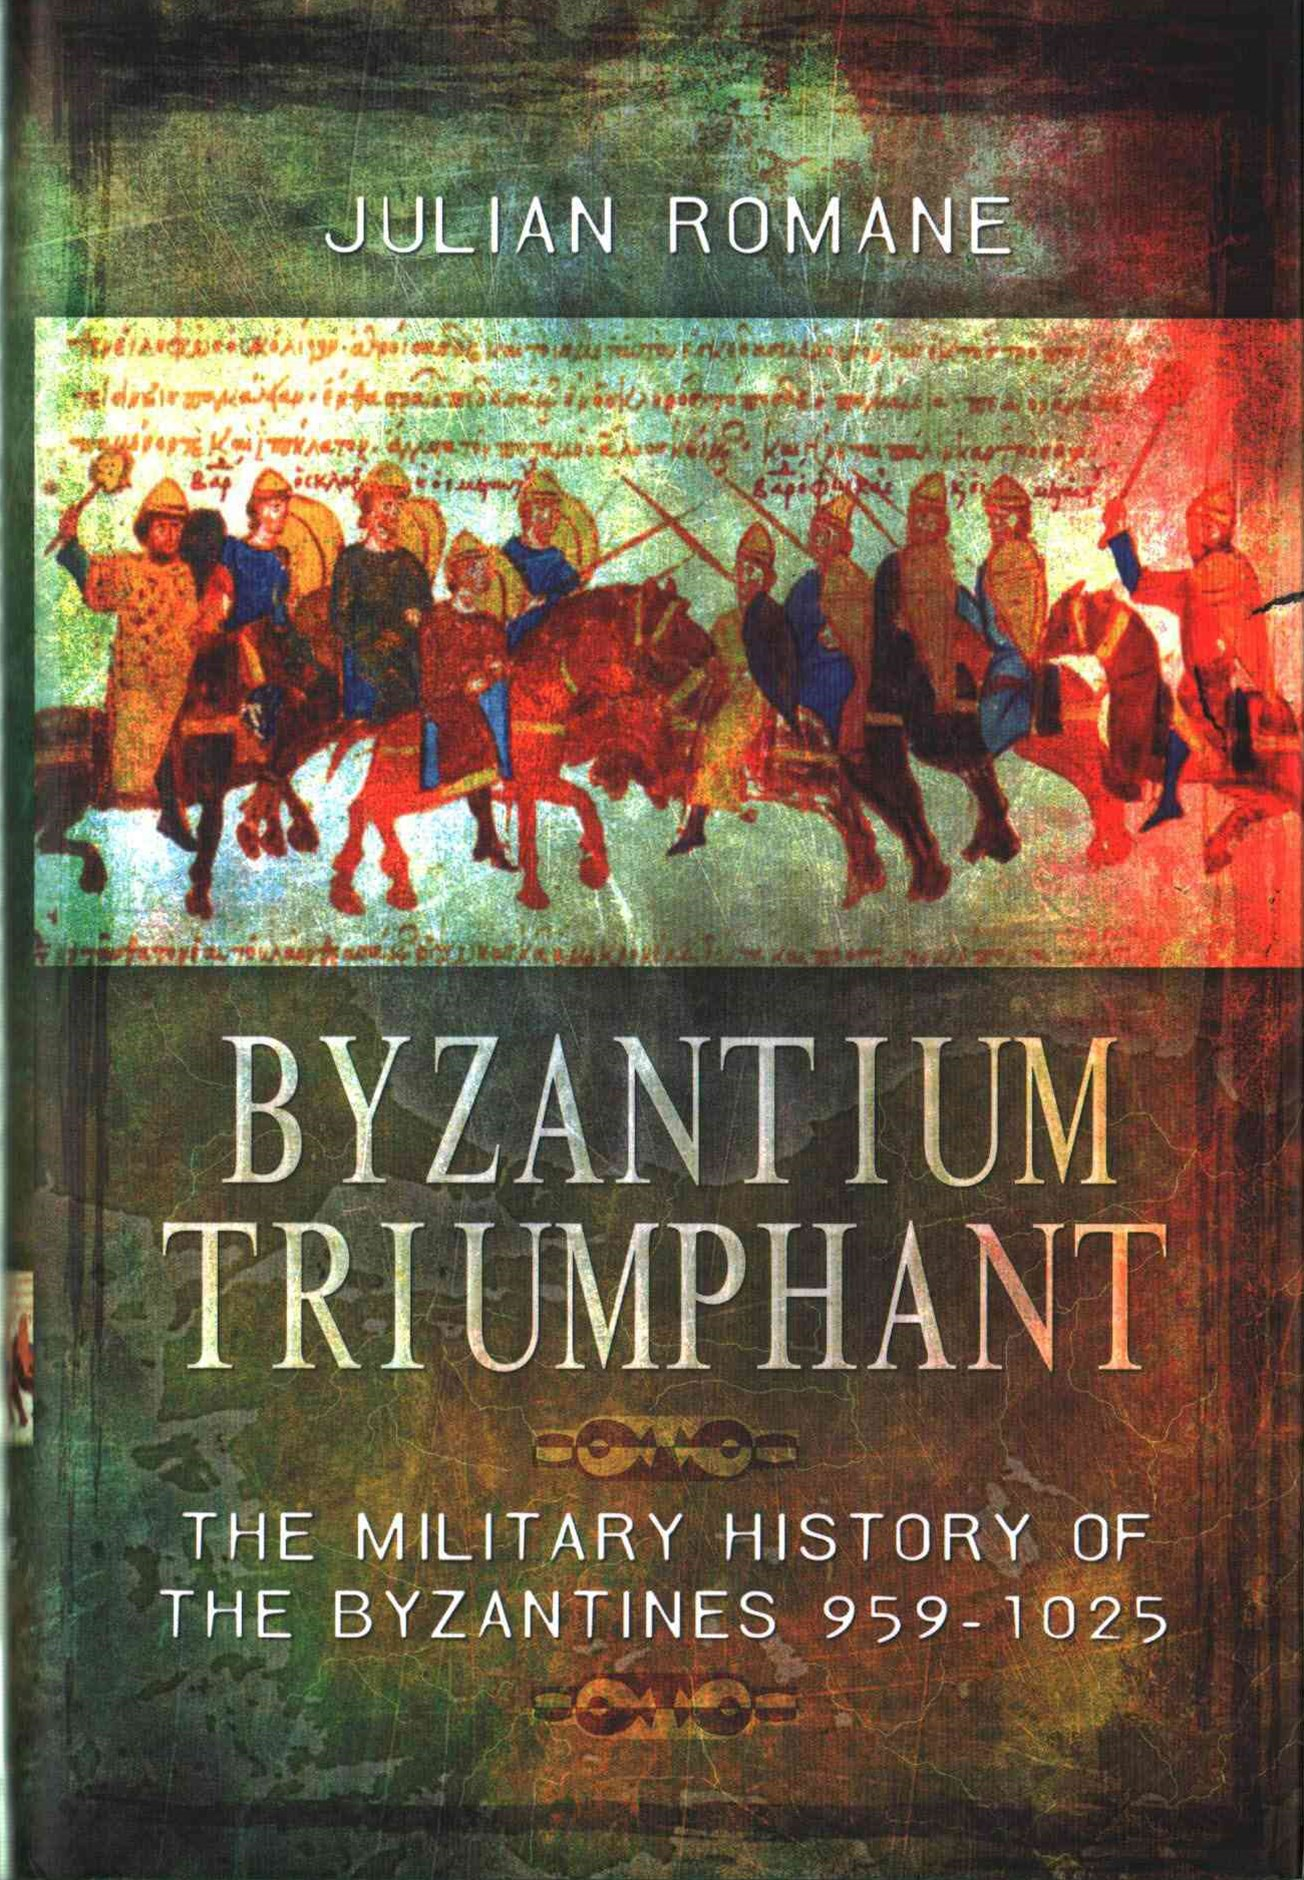 Byzantium Triumphant: The Military History of the Byzantines